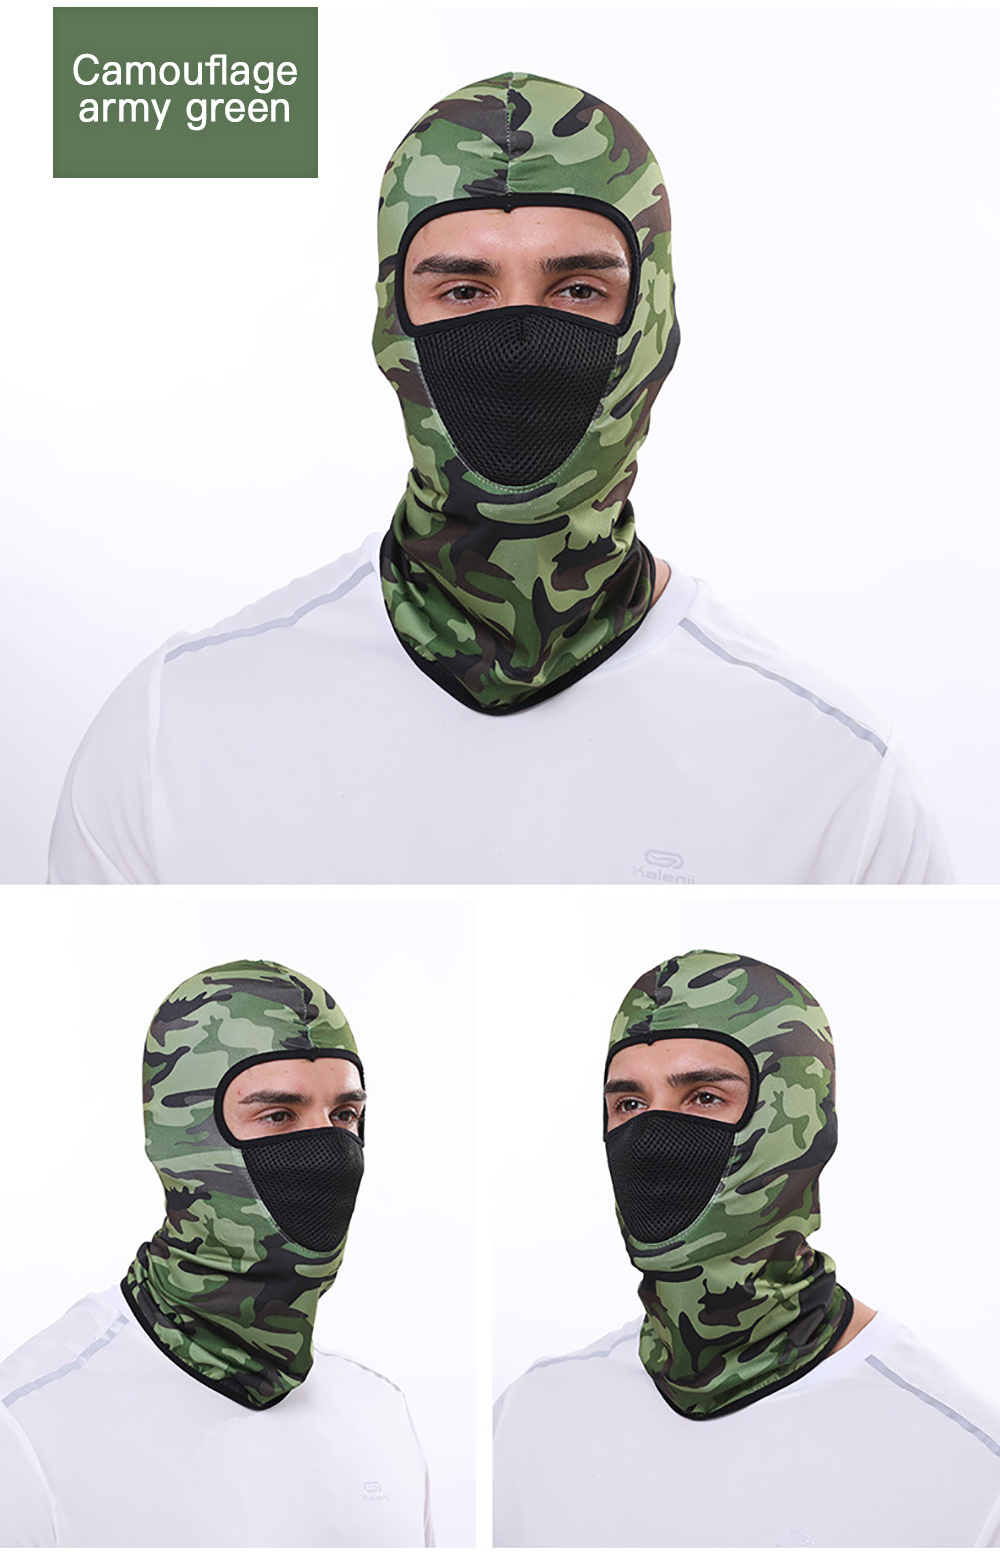 H8082b5c6432048a3995286e061c5d0b5b Zacro Outdoor Cycling Hooded Training Mask for Men Women Summer Sport Facemask Windproof Sunscreen Dustproof Bicycle Ski Mask